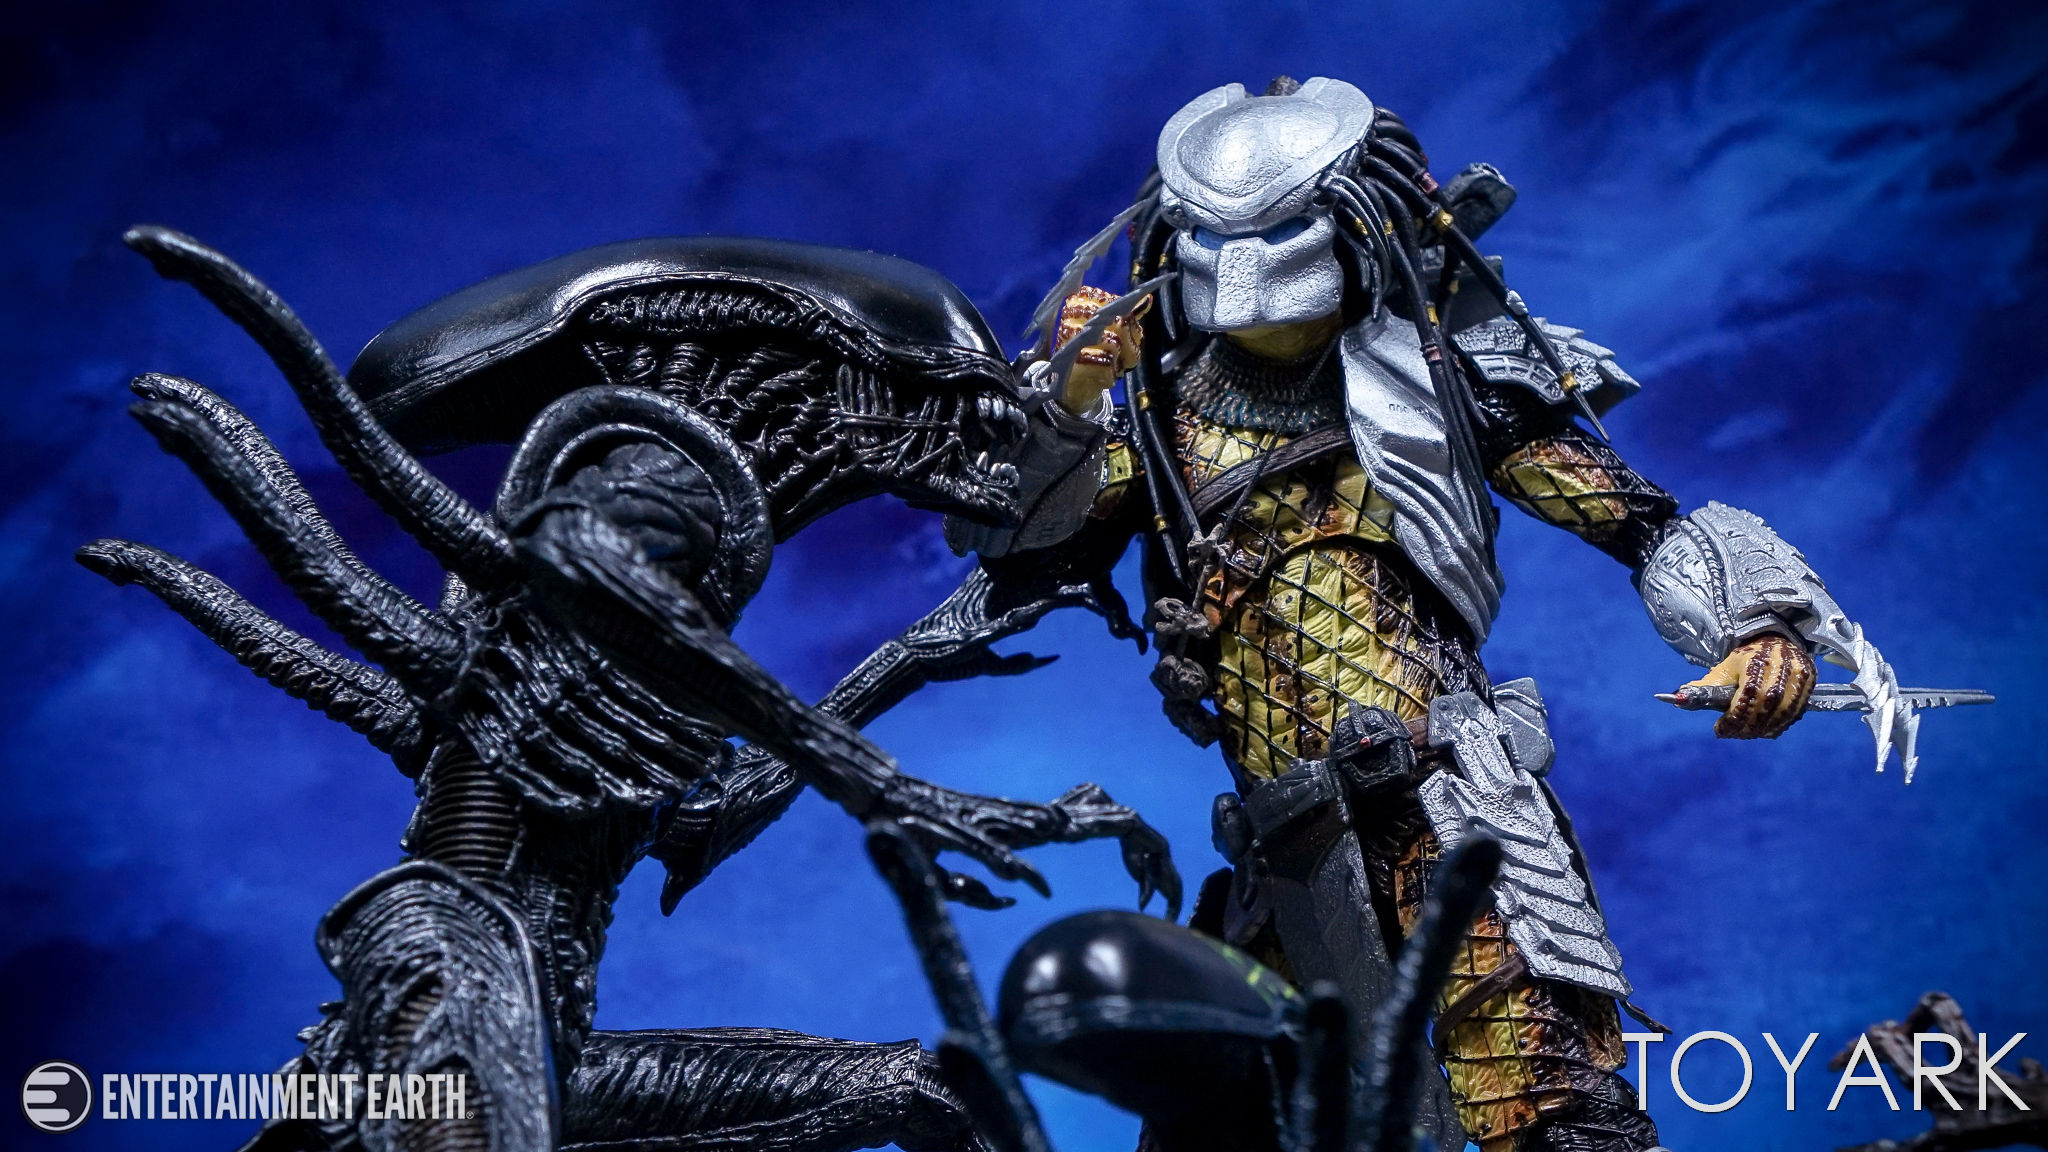 http://news.toyark.com/wp-content/uploads/sites/4/2017/04/NECA-Youngblood-Predator-033.jpg